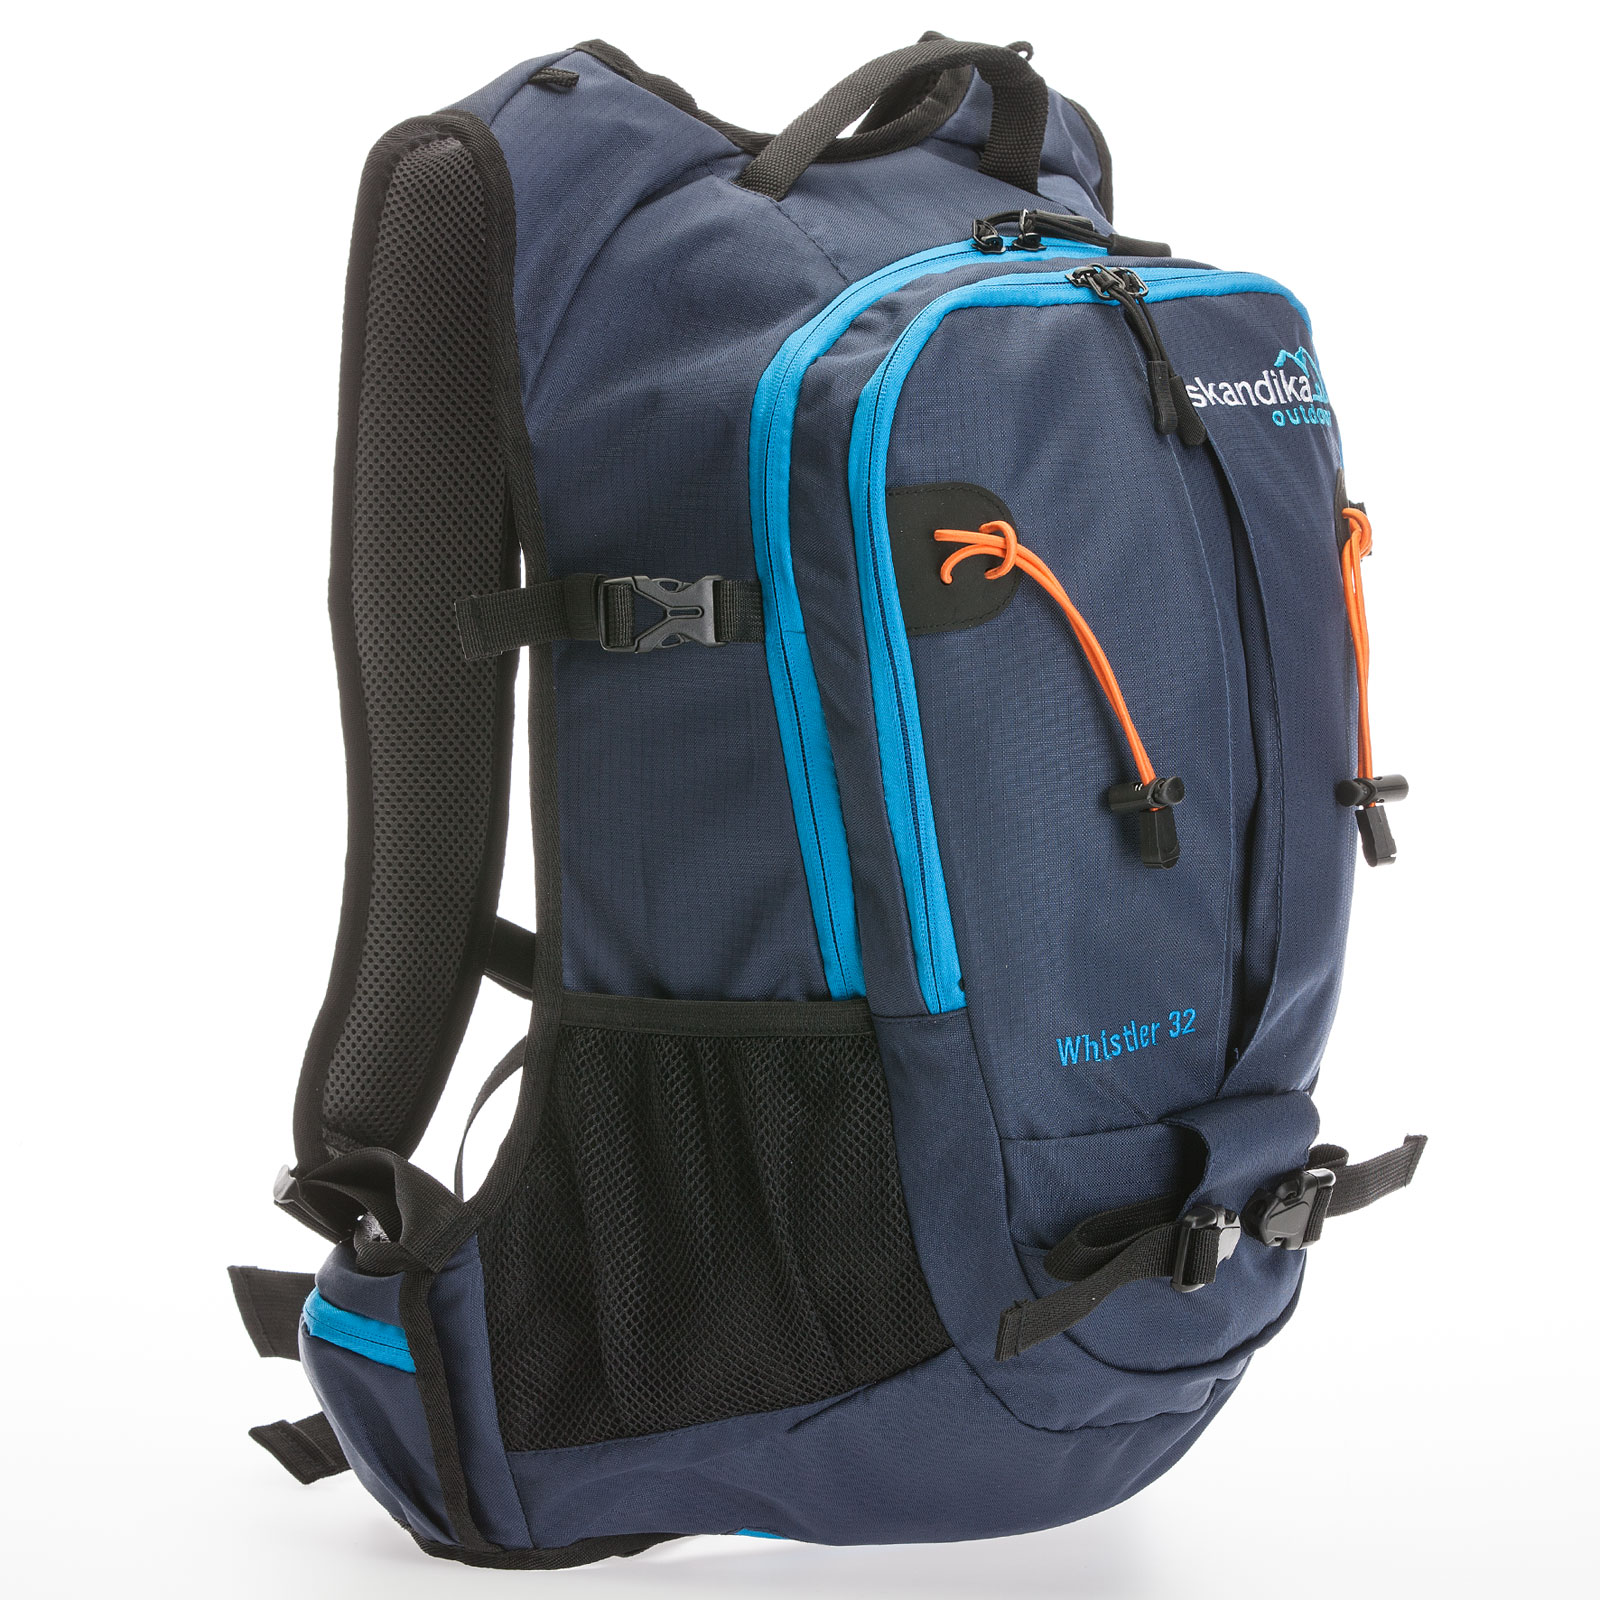 Skandika Trekking Hiking Backpack Rucksack 11 Models To ...